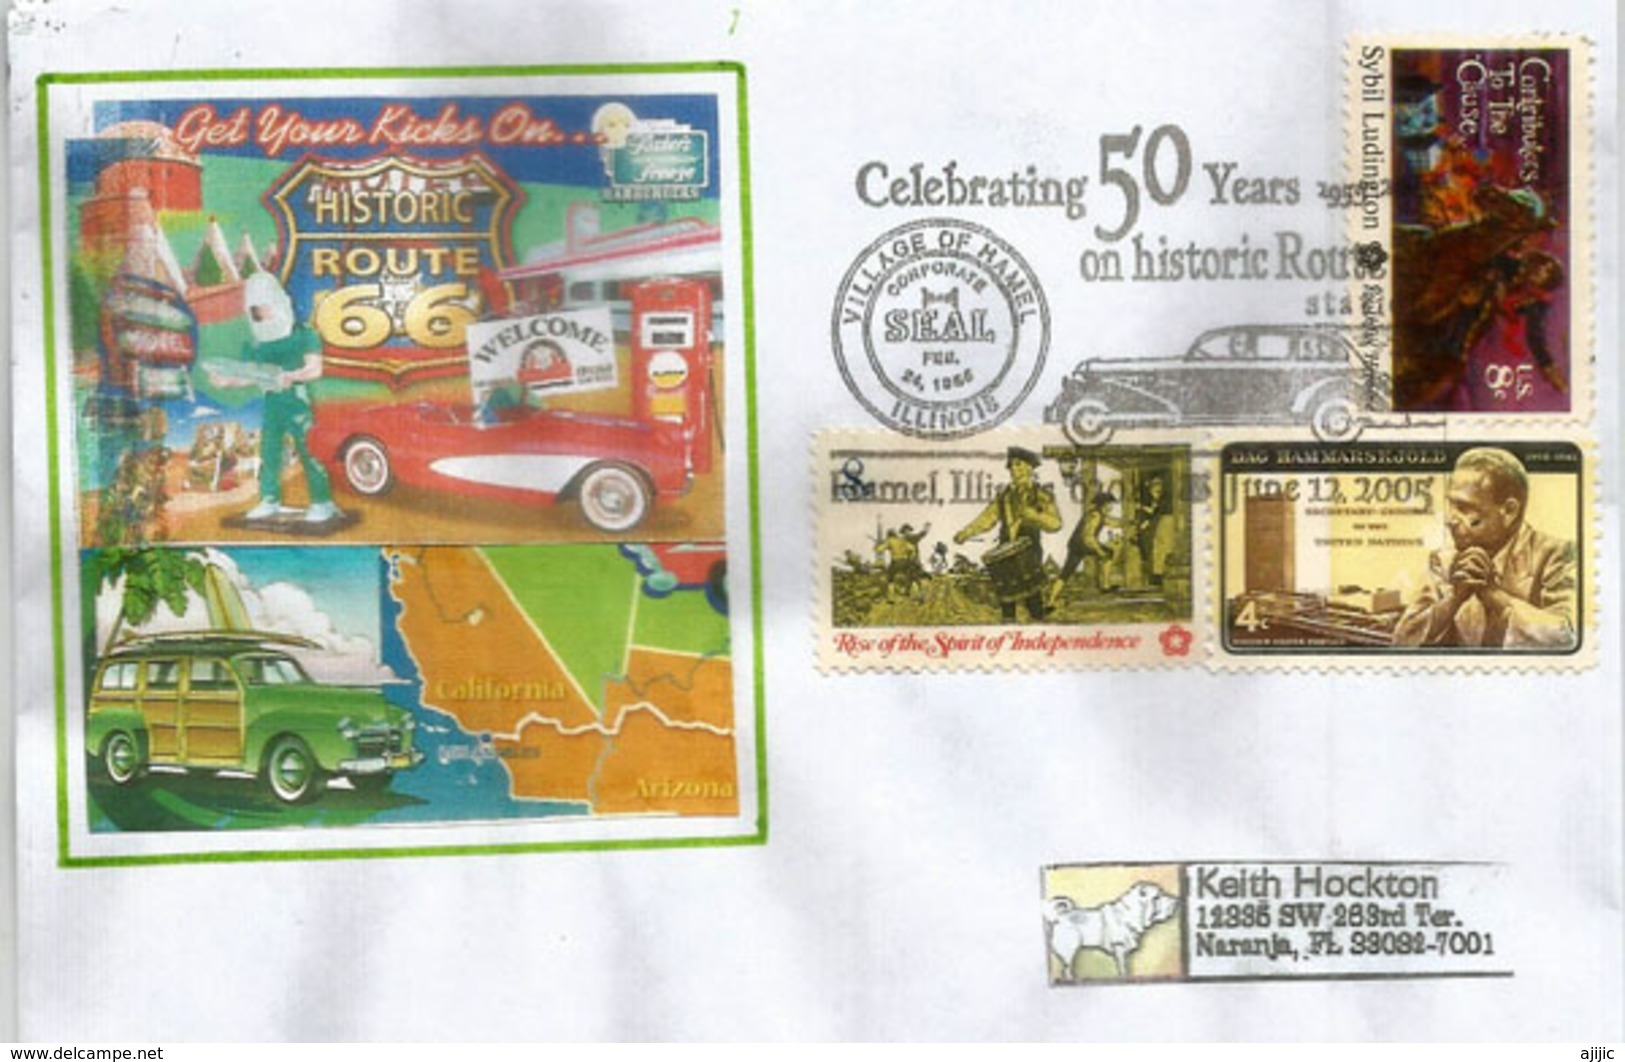 USA. Celebrating 50 Years Historic Route 66 (Main Street Of America) Chicago-to-Los Angeles. Special Letter - Event Covers